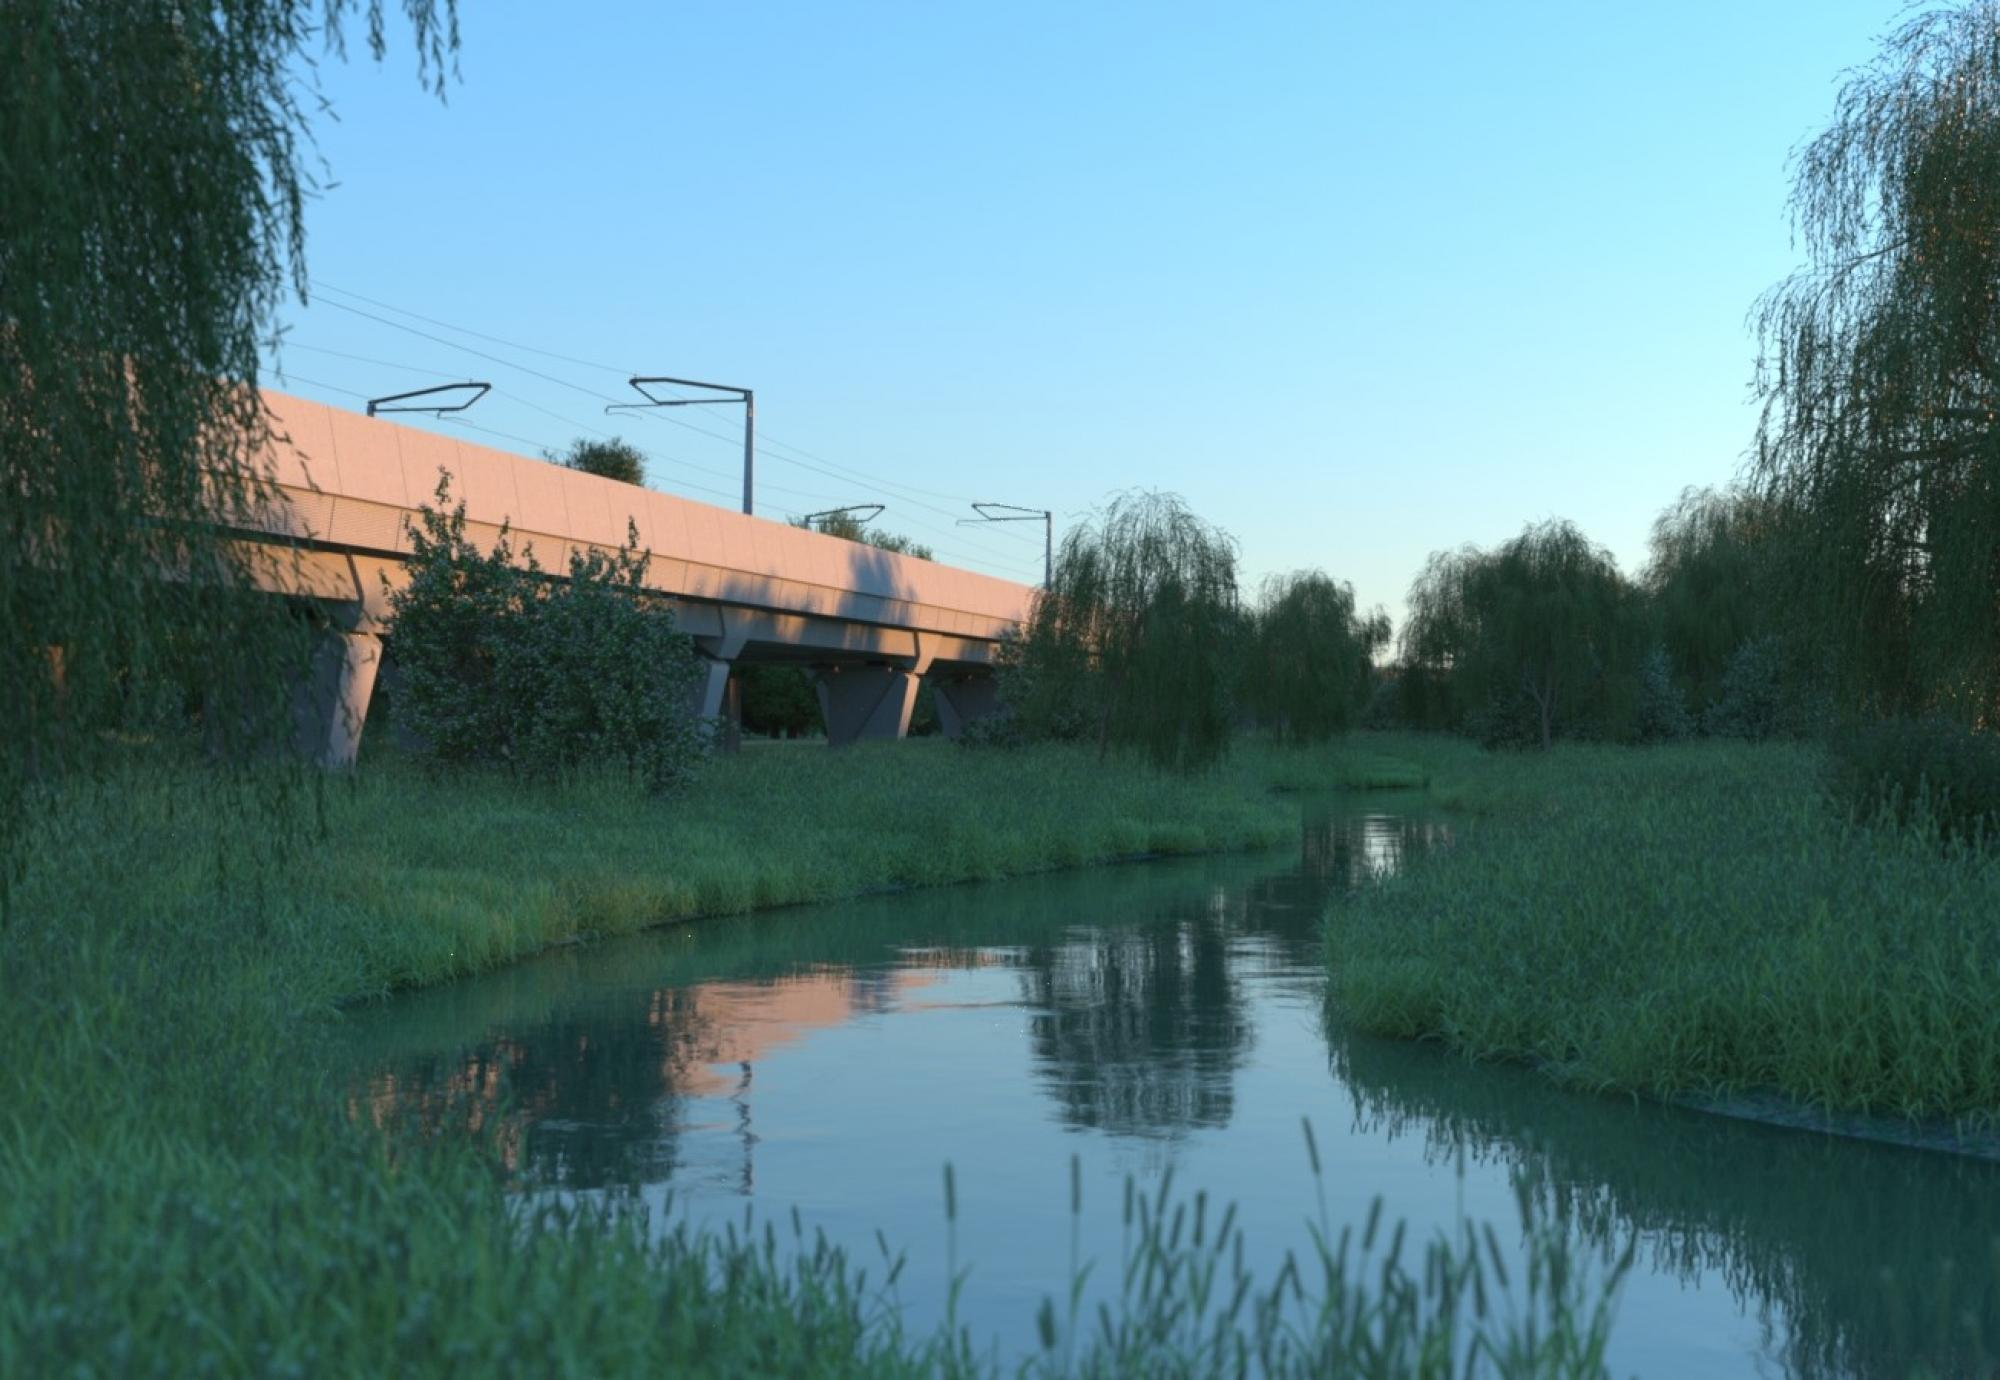 HS2 publishes viaduct designs for Edgcote and Lower Thorpe